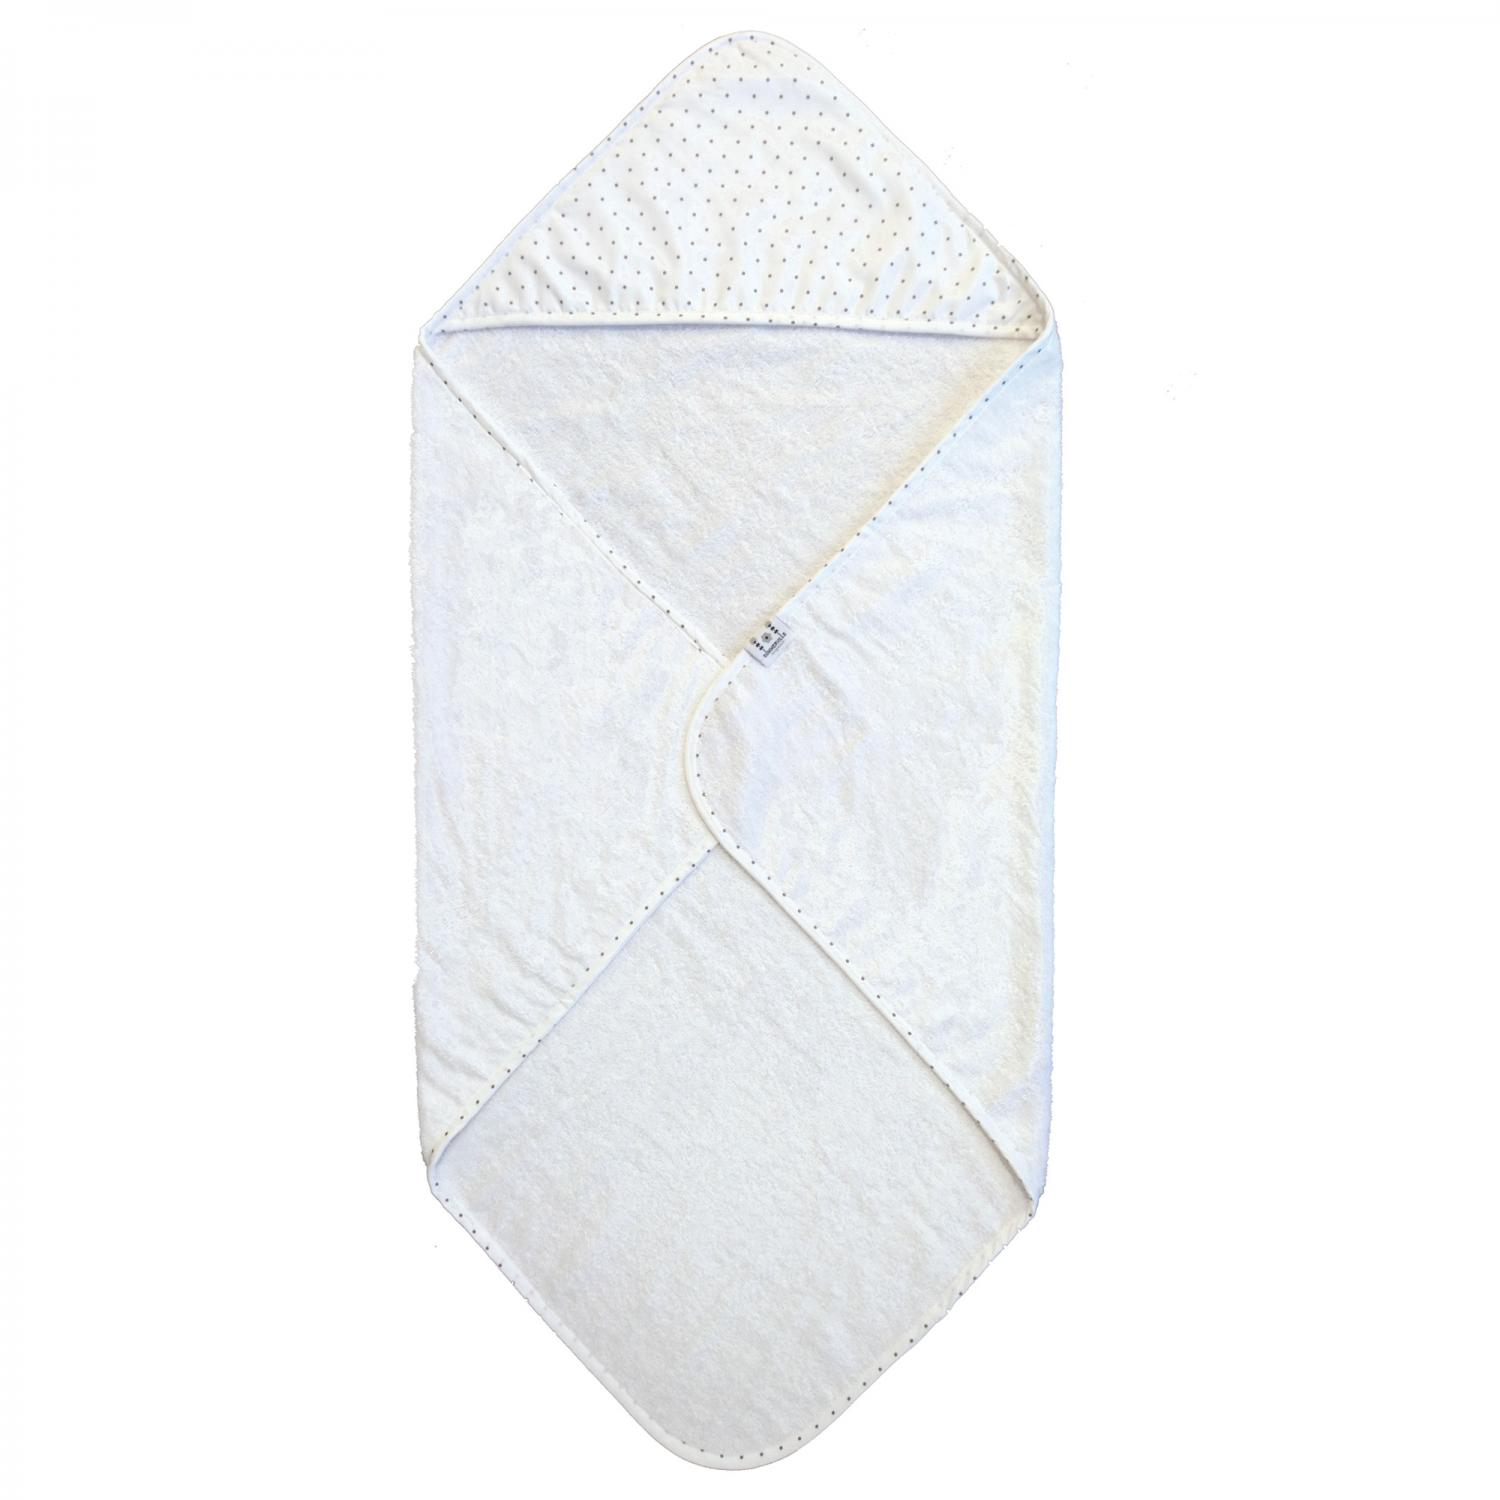 Hooded towel white dotty GOTS